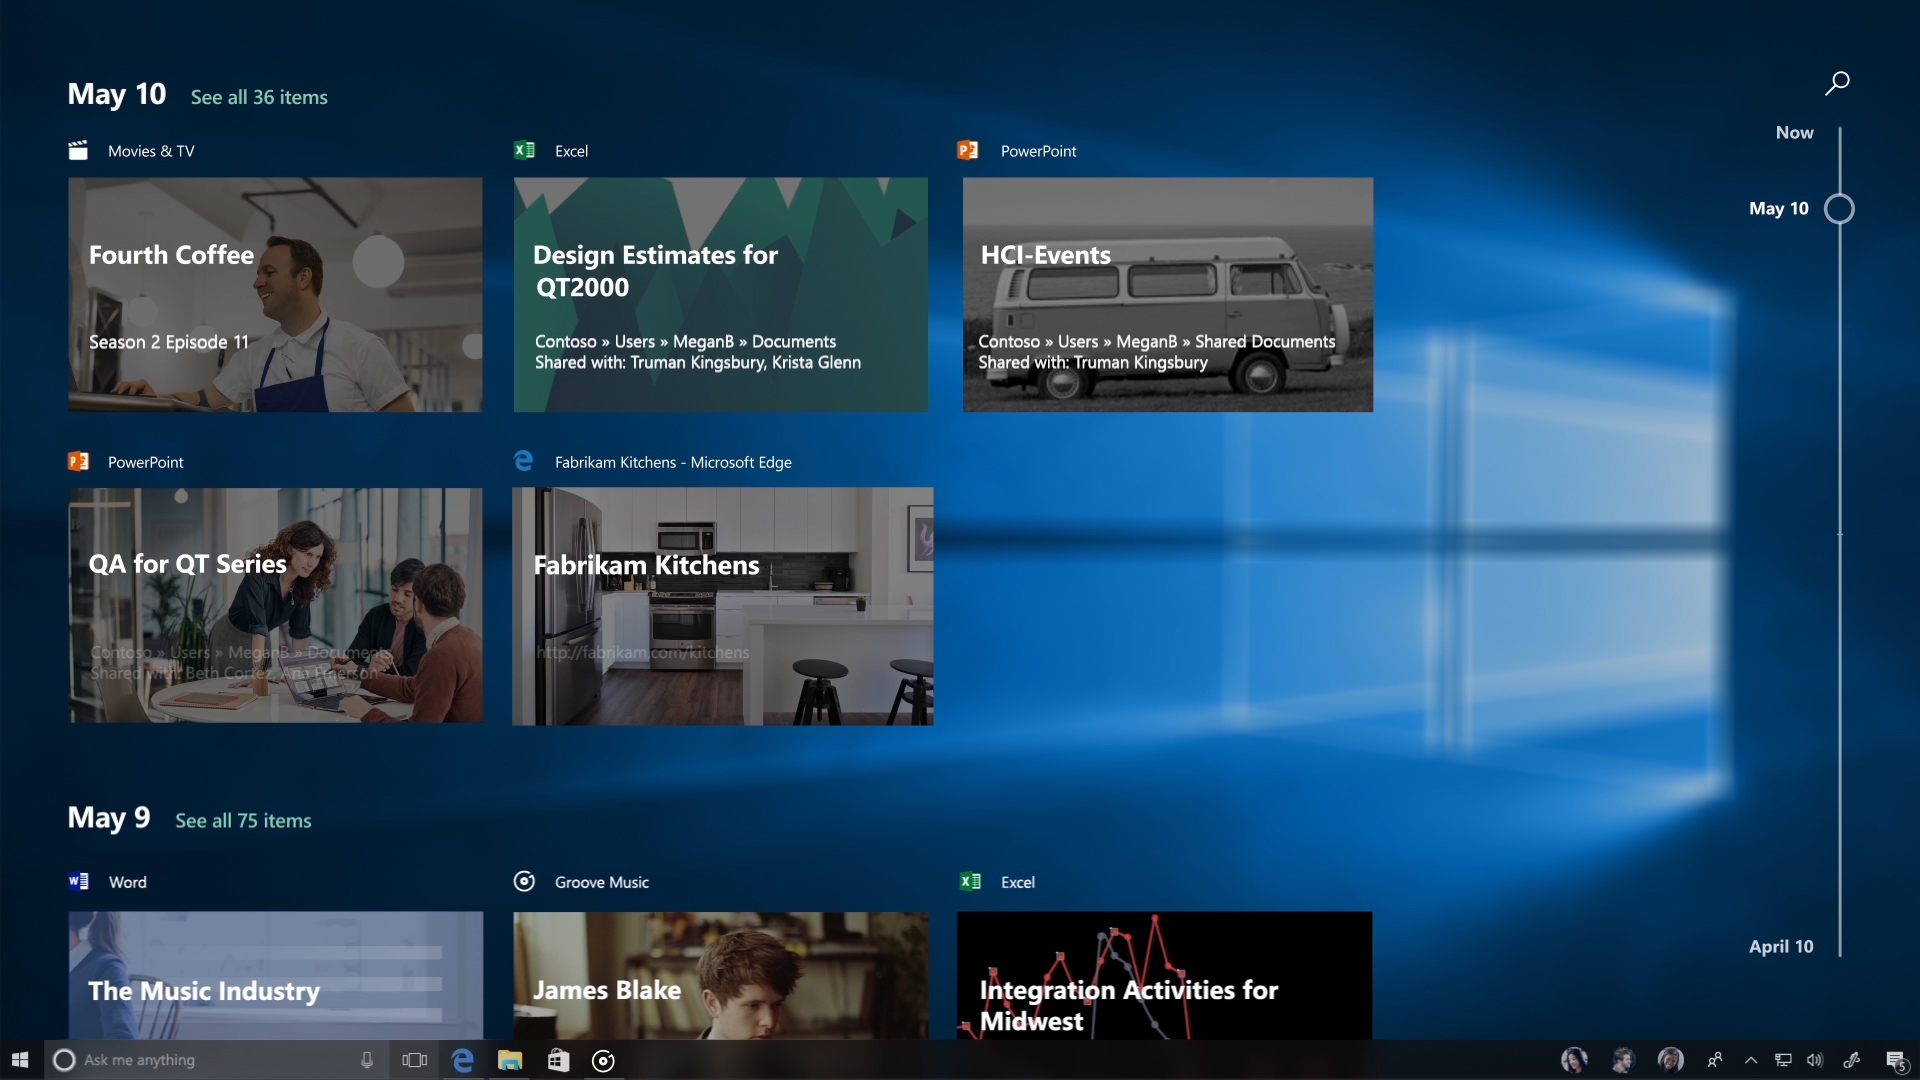 Windows 10 April 2018 Update packs the Timeline feature